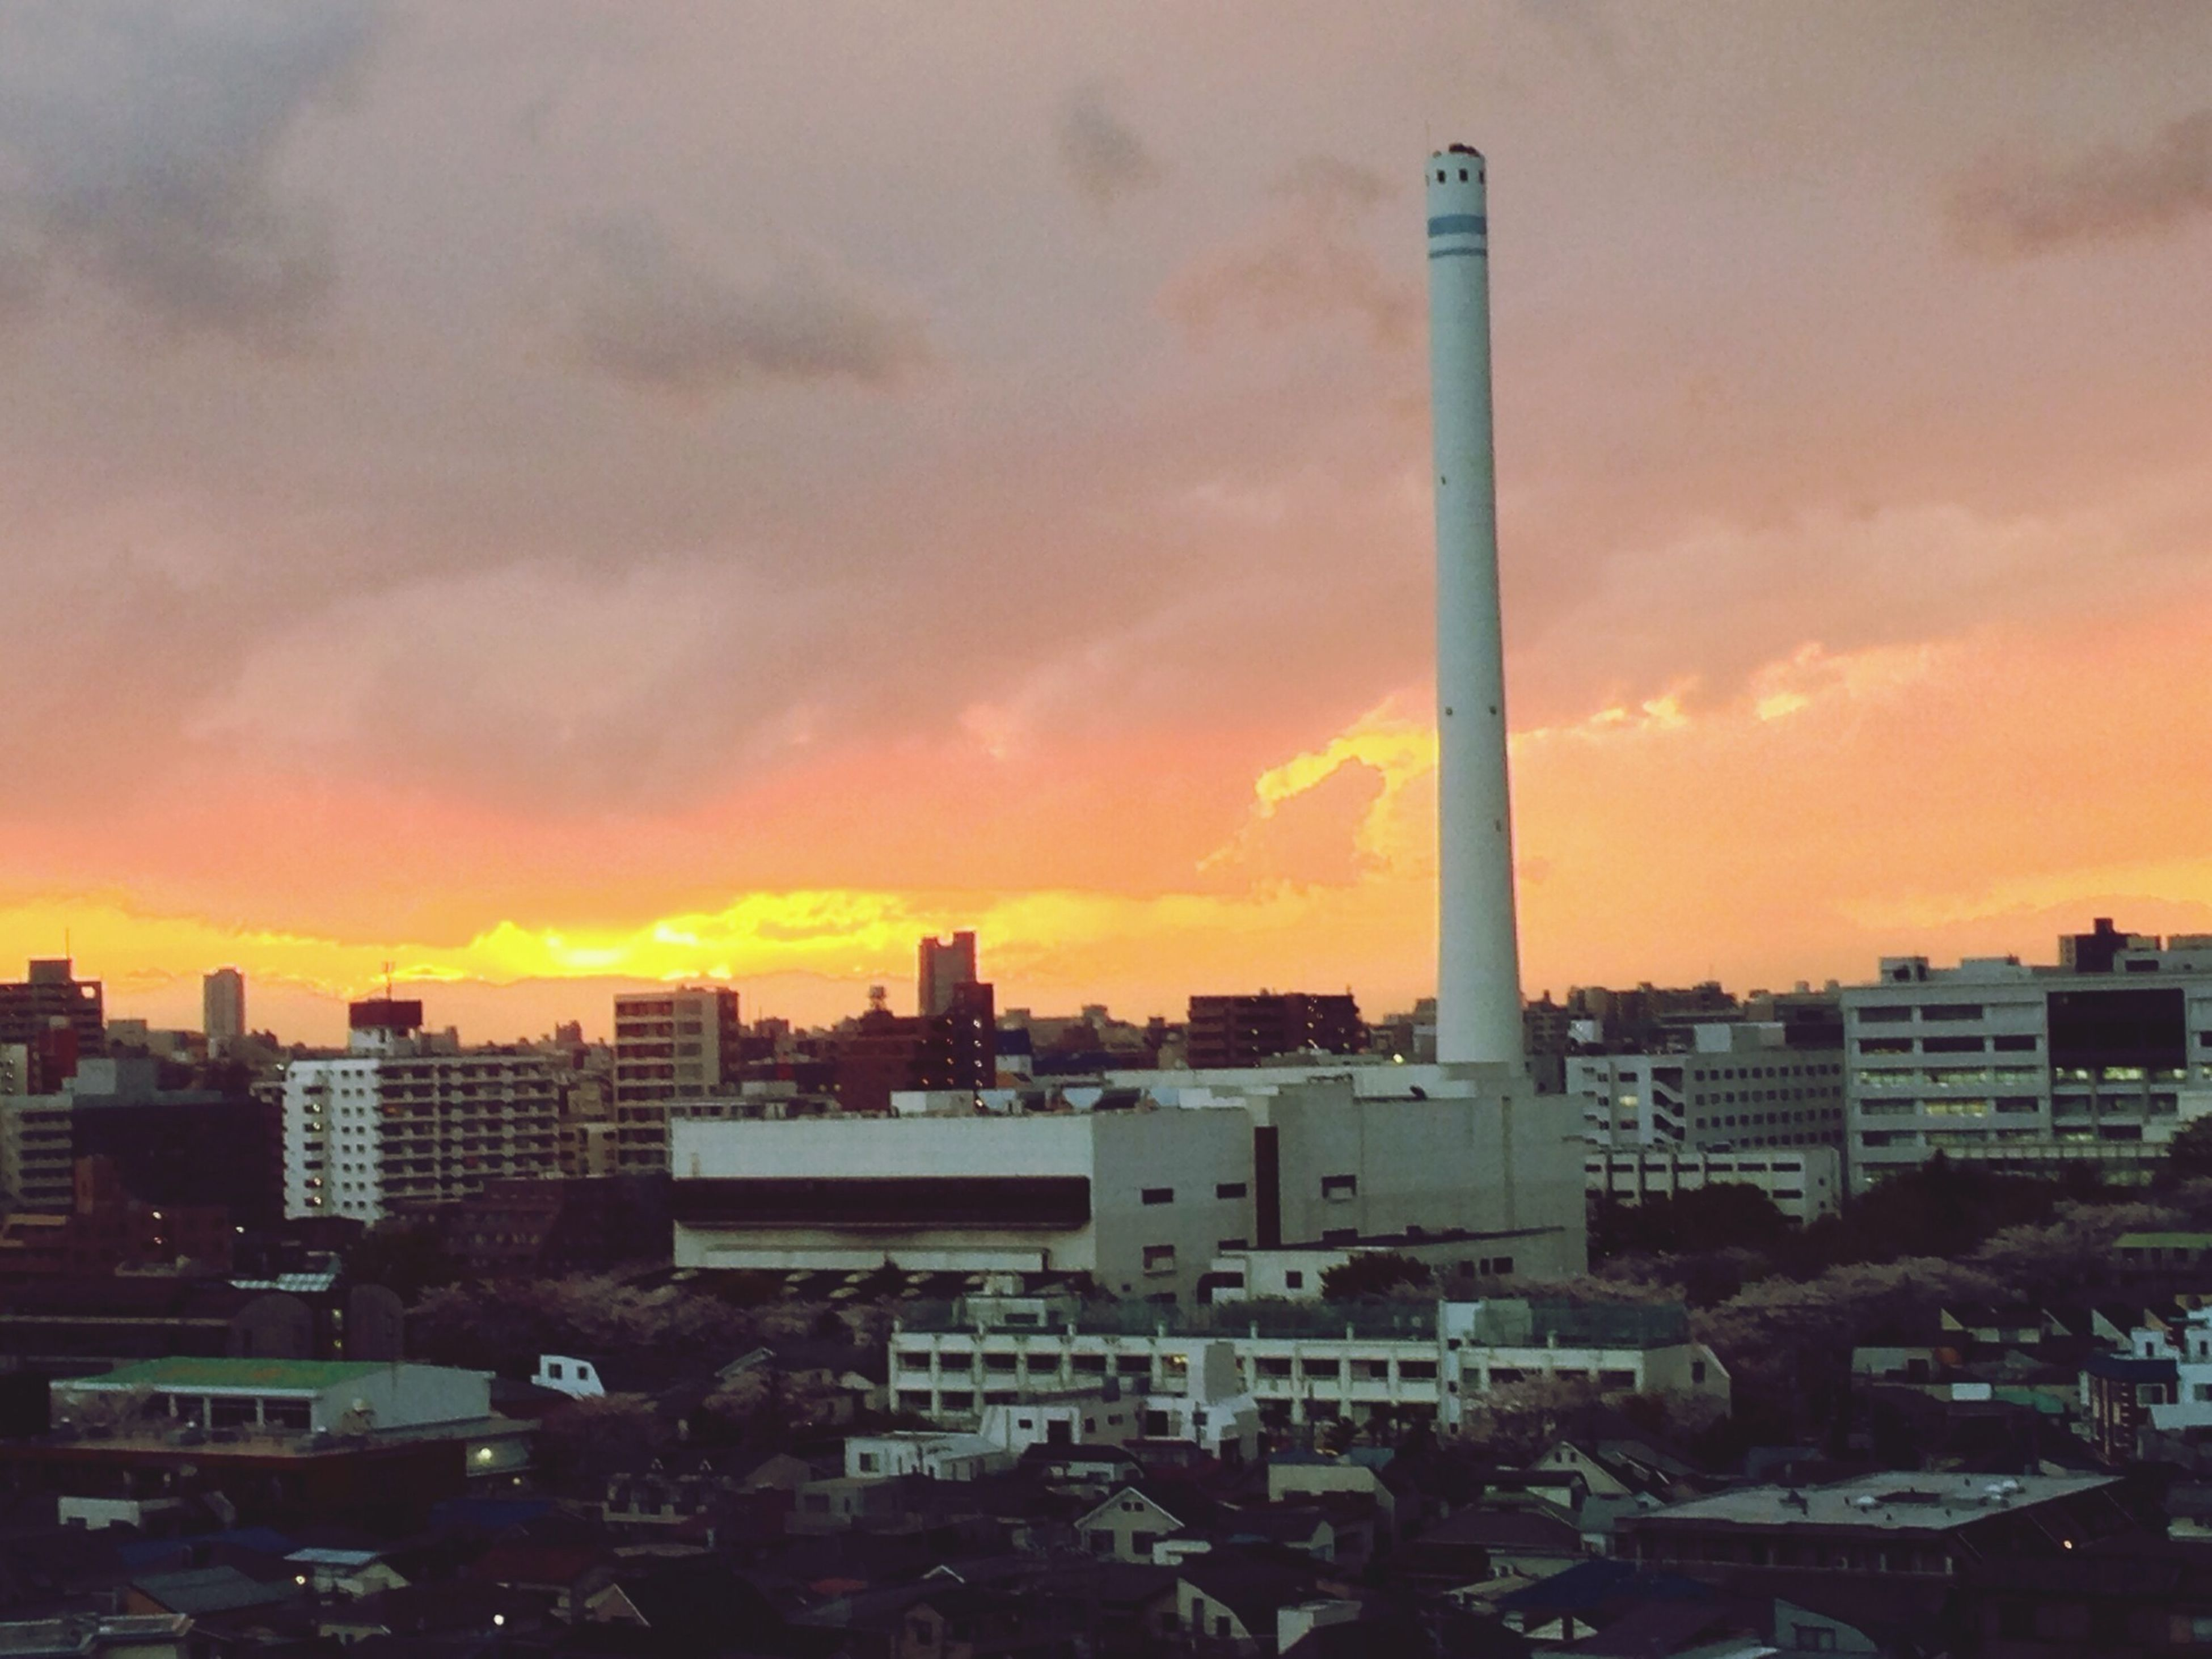 Dramatic, fiery sunset after the storm. Sunset Sky Clouds And Sky EyeEm Best Shots